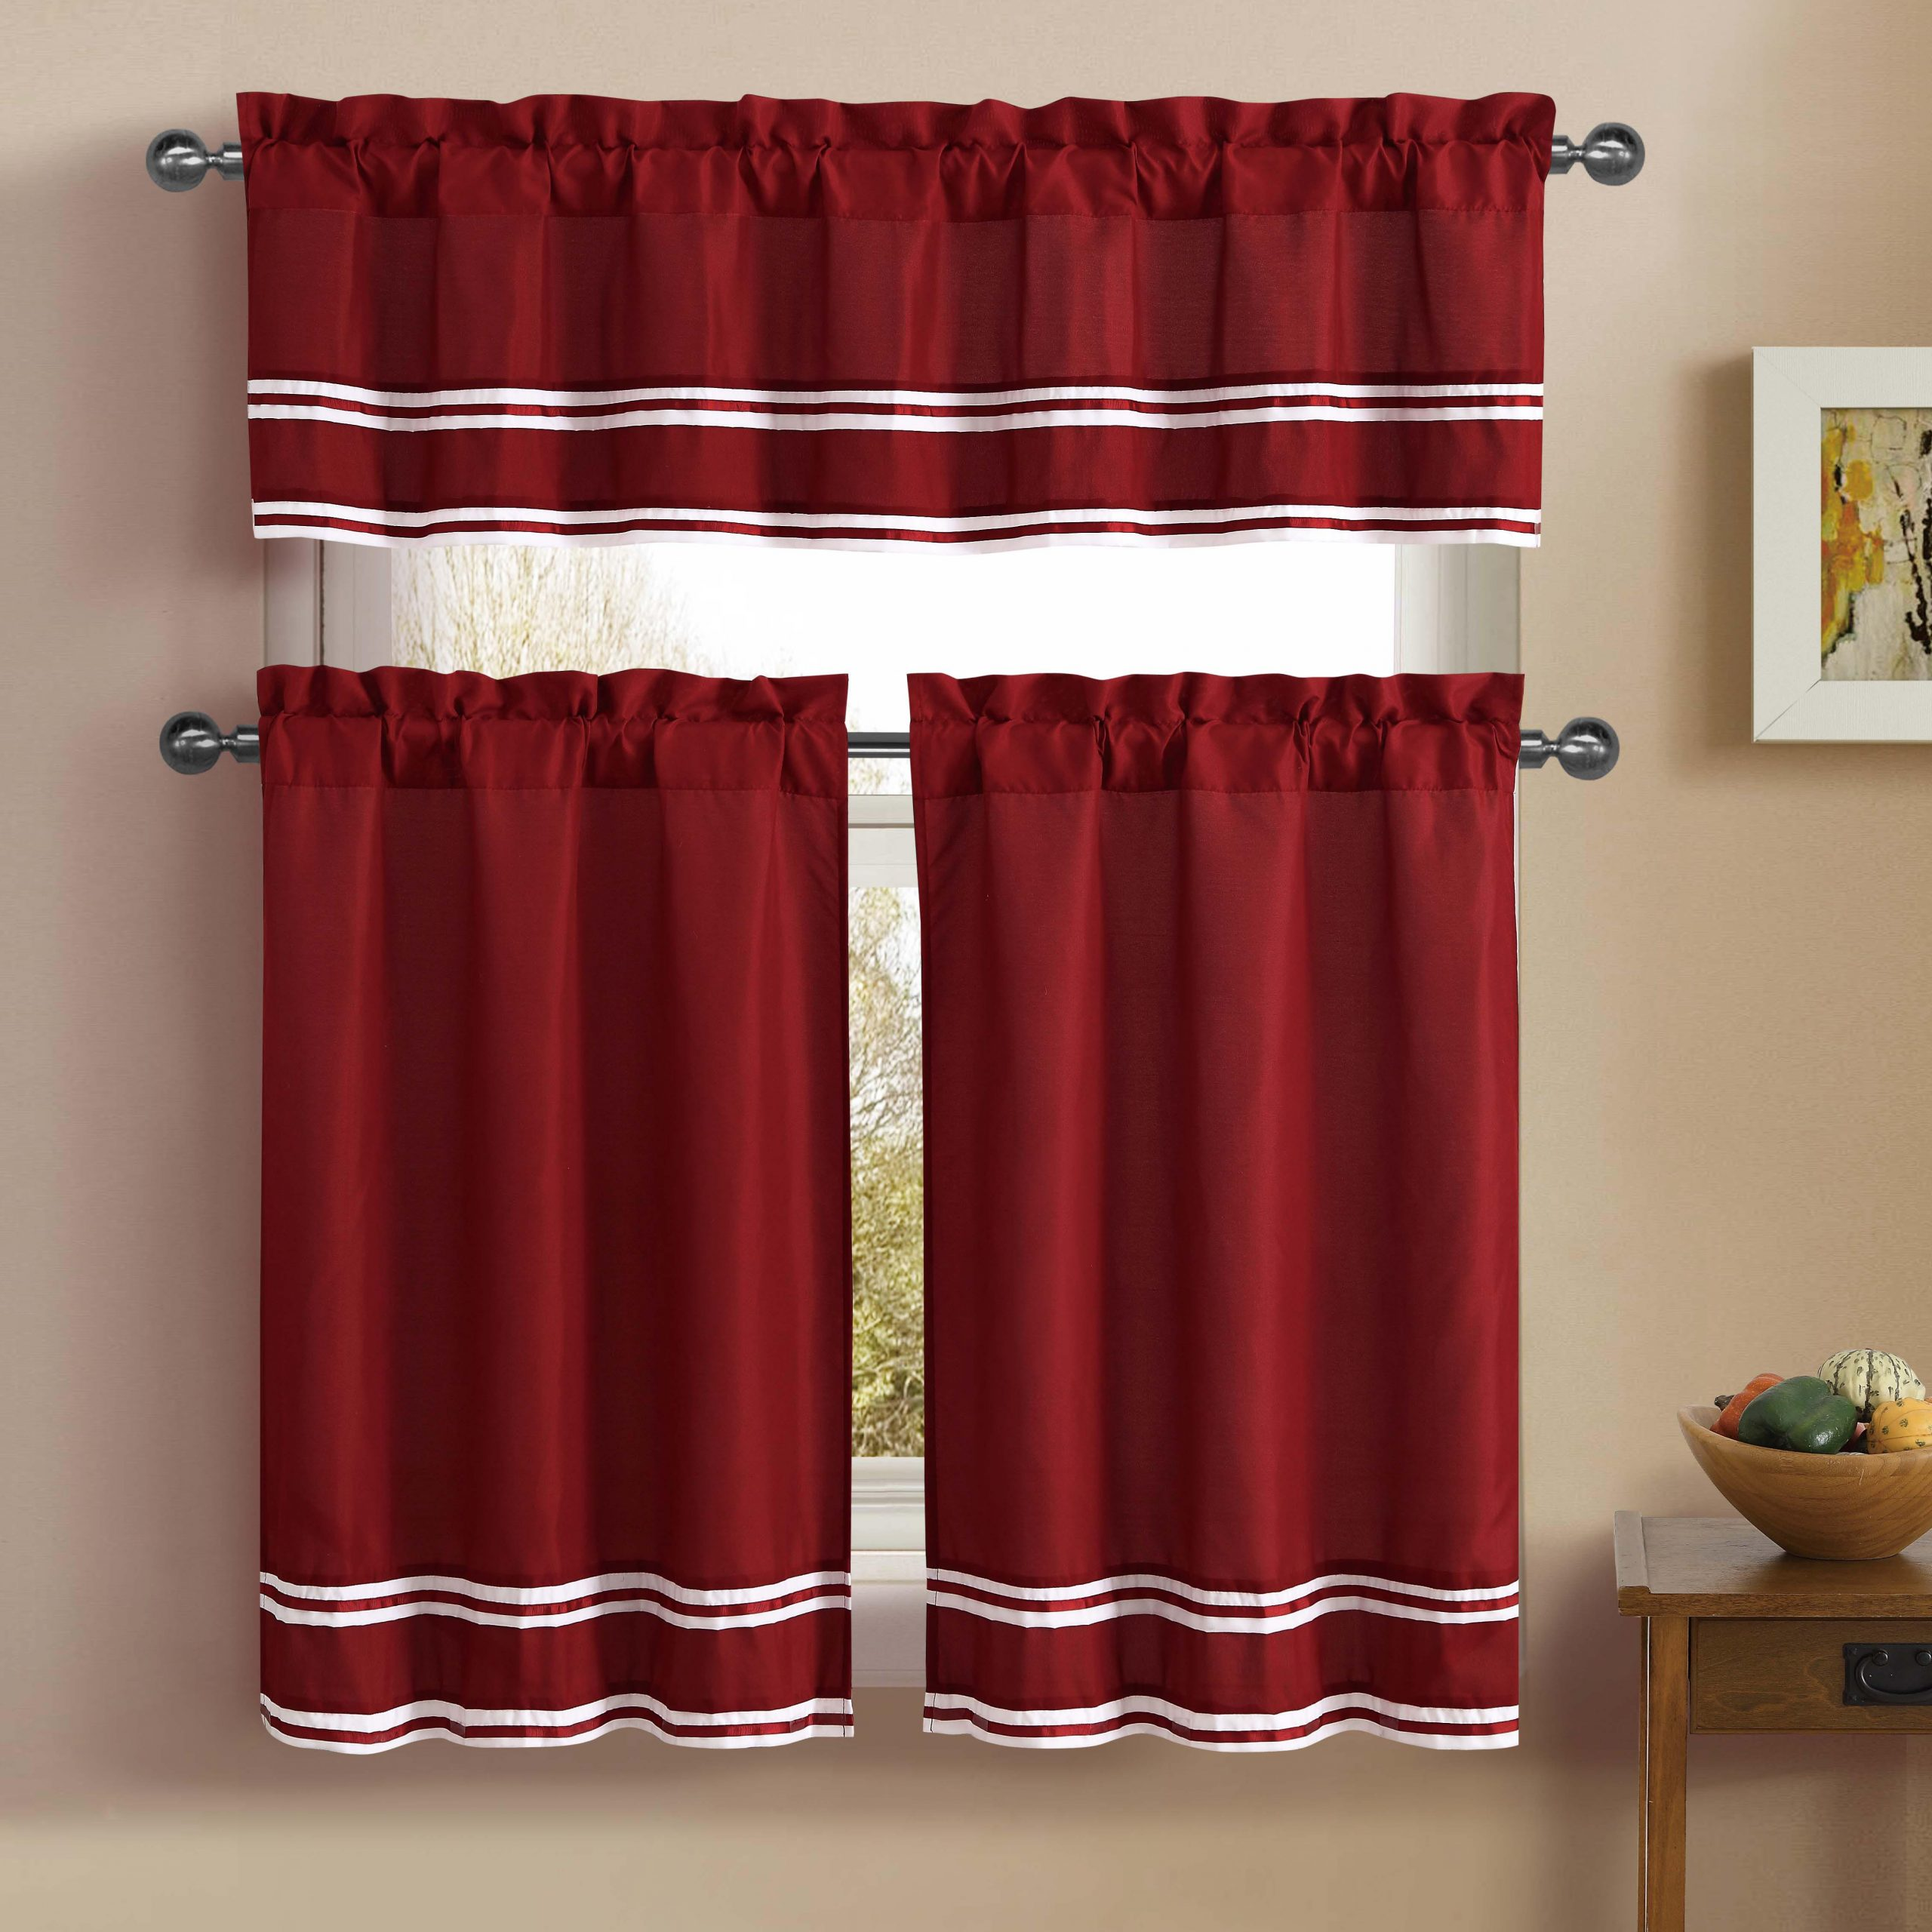 Most Current Pintuck Kitchen Window Tiers Intended For 3 Piece Kitchen Cafe/tiers Window Treatment Set: Pintuck Accent Stripes, 2 Tier Panels, 1 Valance (red) (View 14 of 20)